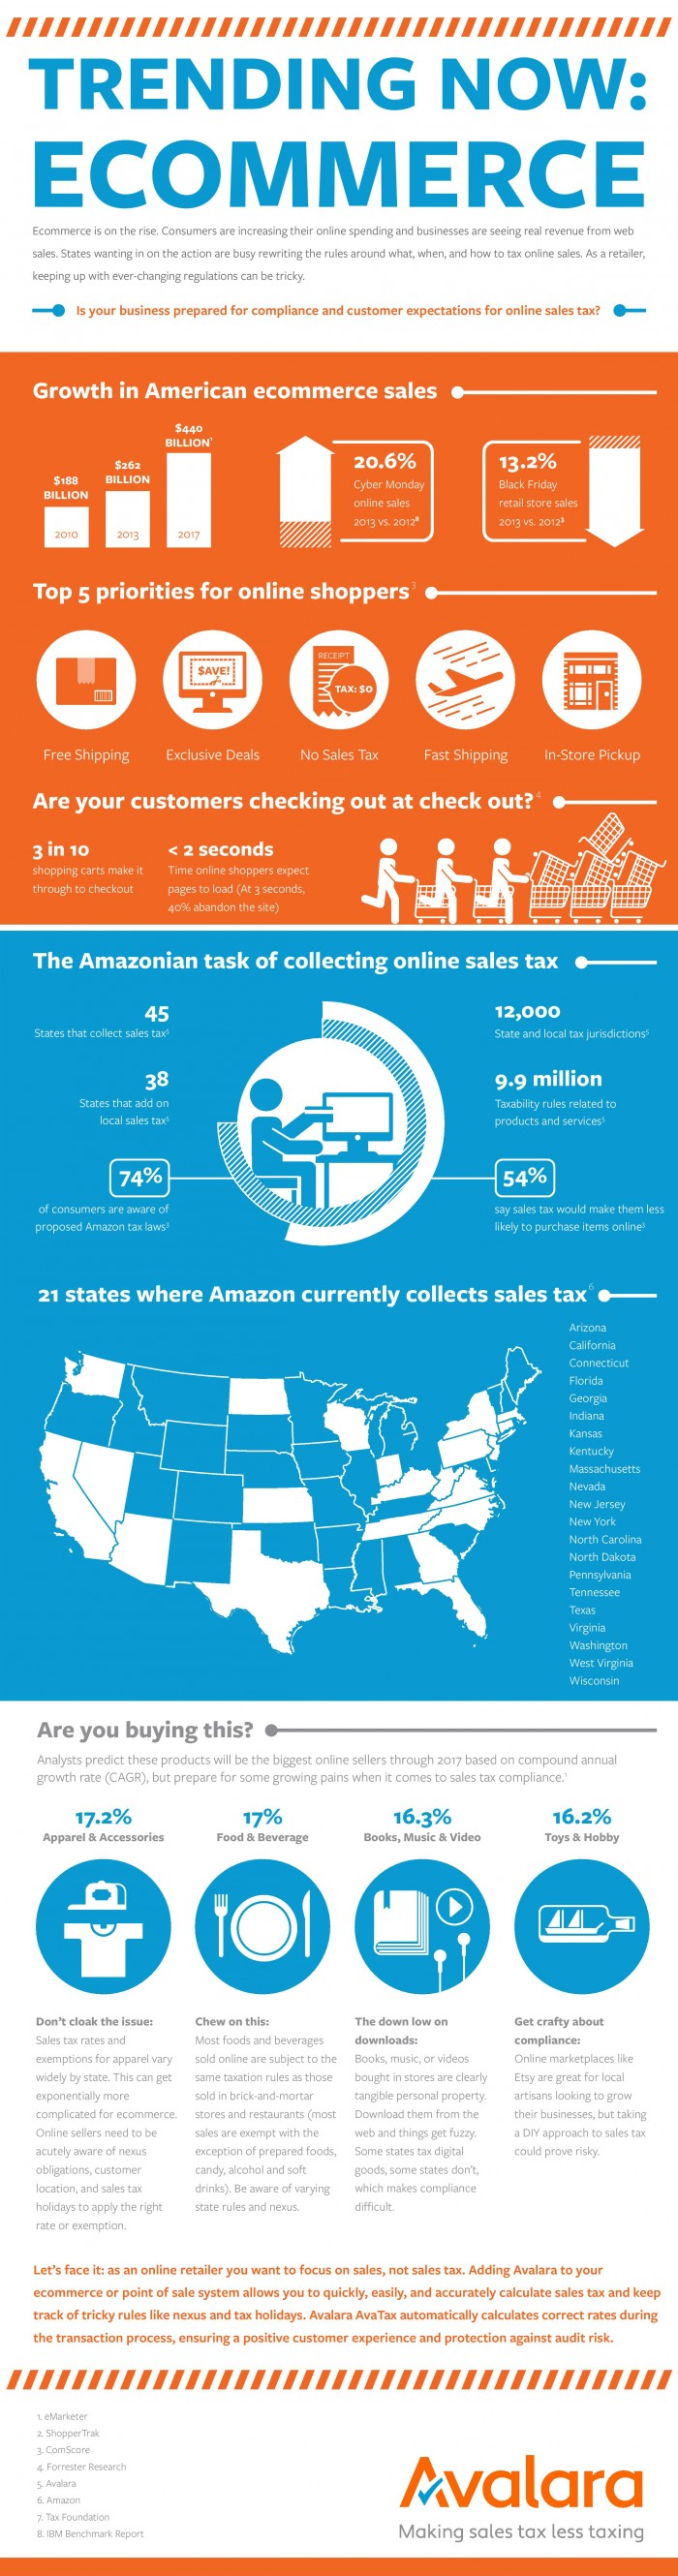 Trending Now - Ecommerce (Infographic).pdf (2)-page-001